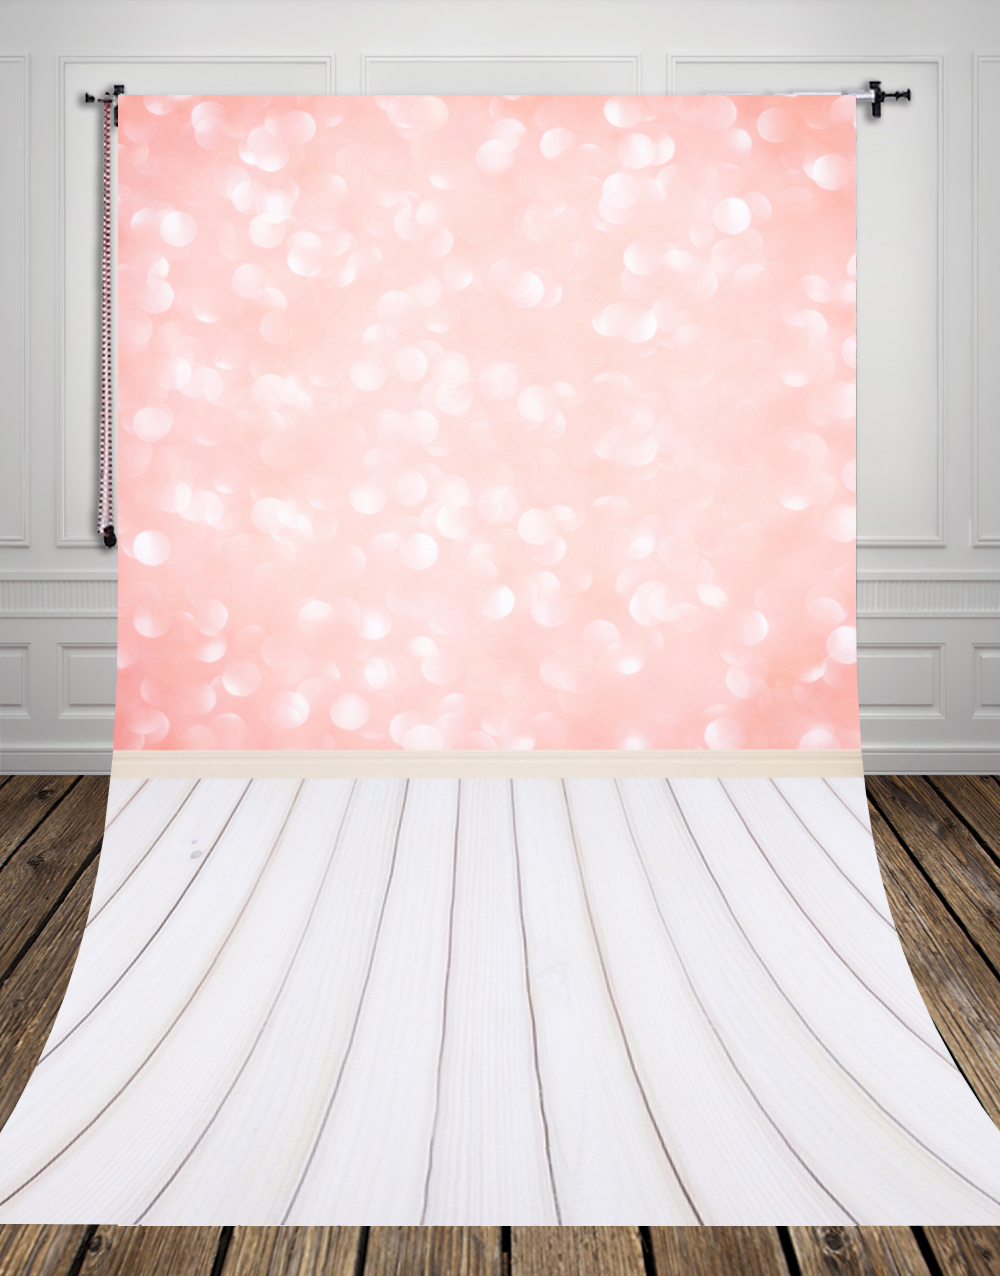 5x8ft(1.5x2.5m) pink wallpaper with wood floor photo studio background backdrop made of  Art fabric for photography D-9689<br>